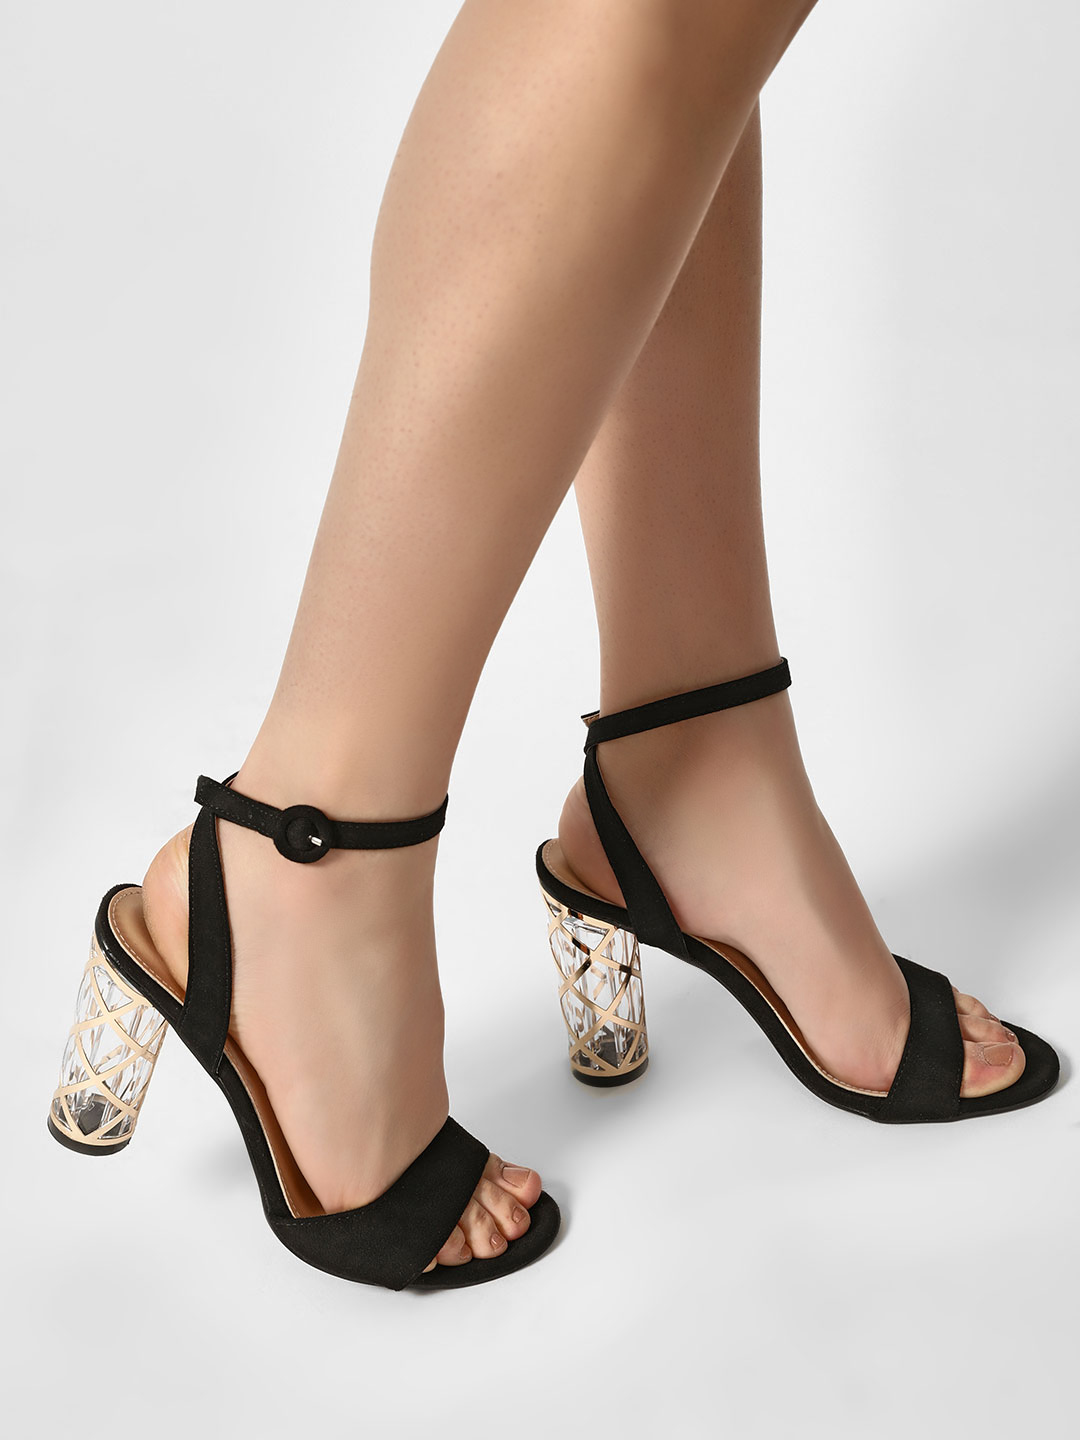 Sole Story Black Transparent Heel Ankle Strap Sandals 1